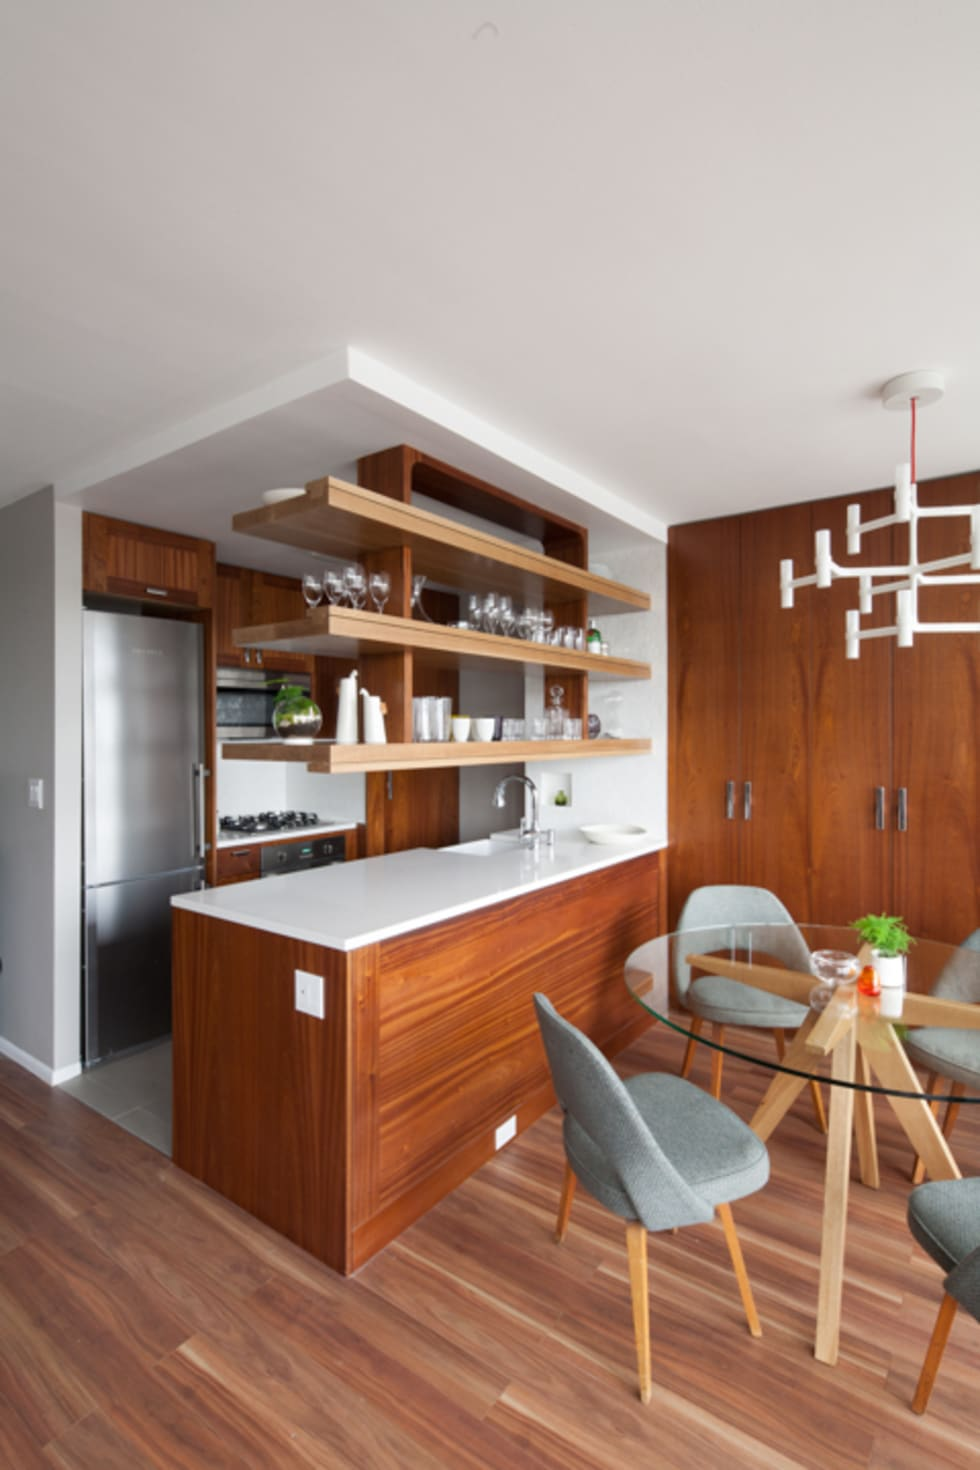 4 small kitchens that pack a big style punch!